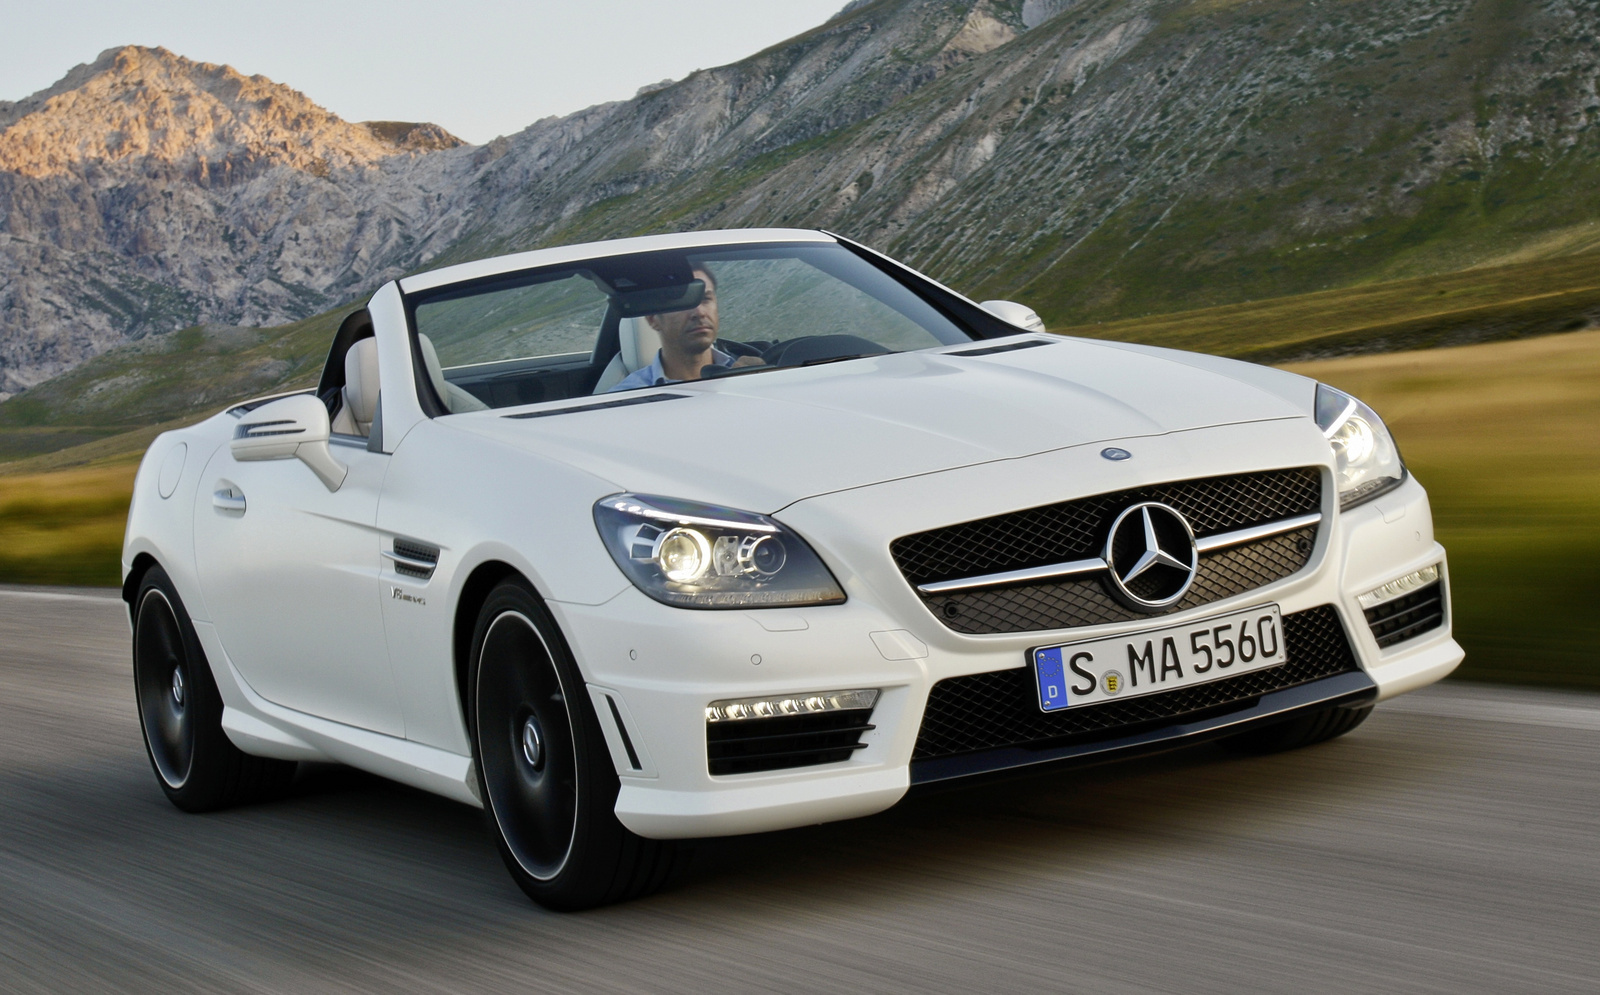 2014 mercedes benz slk class overview cargurus for Mercedes benz 2014